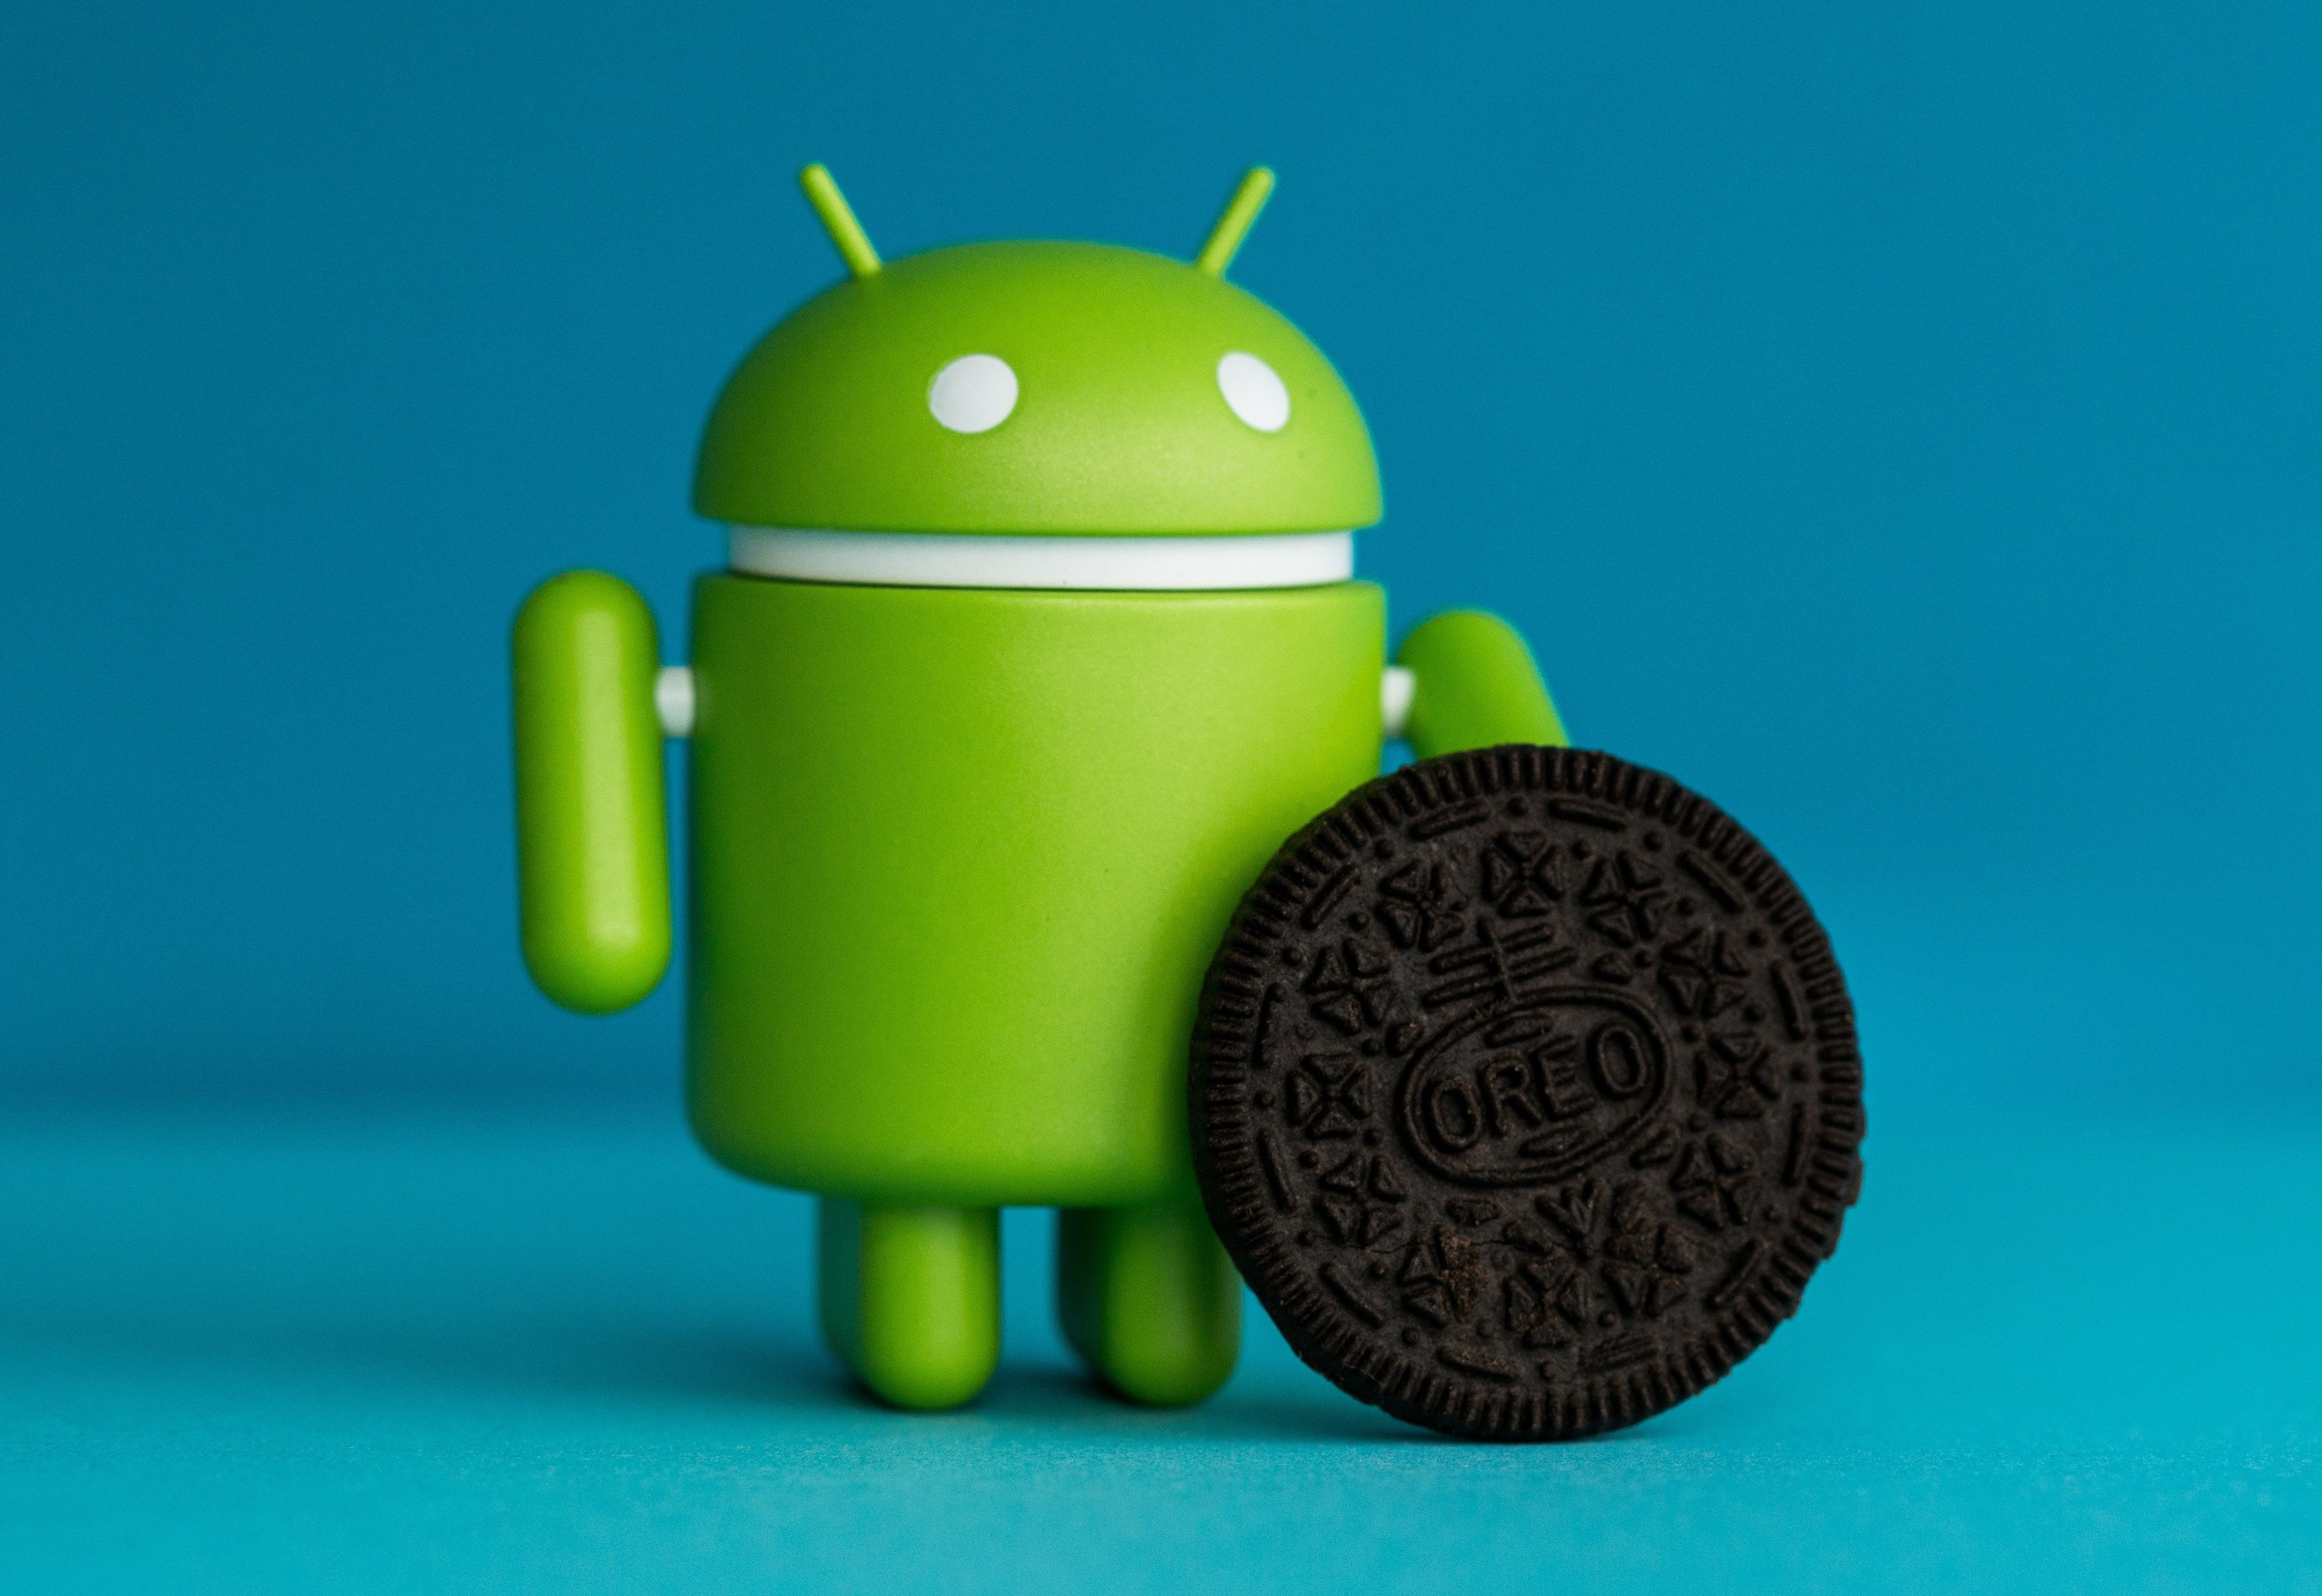 4266x2933 Wallpaper Android Oreo, Android 8, Stock, 4K, Technology, #9614